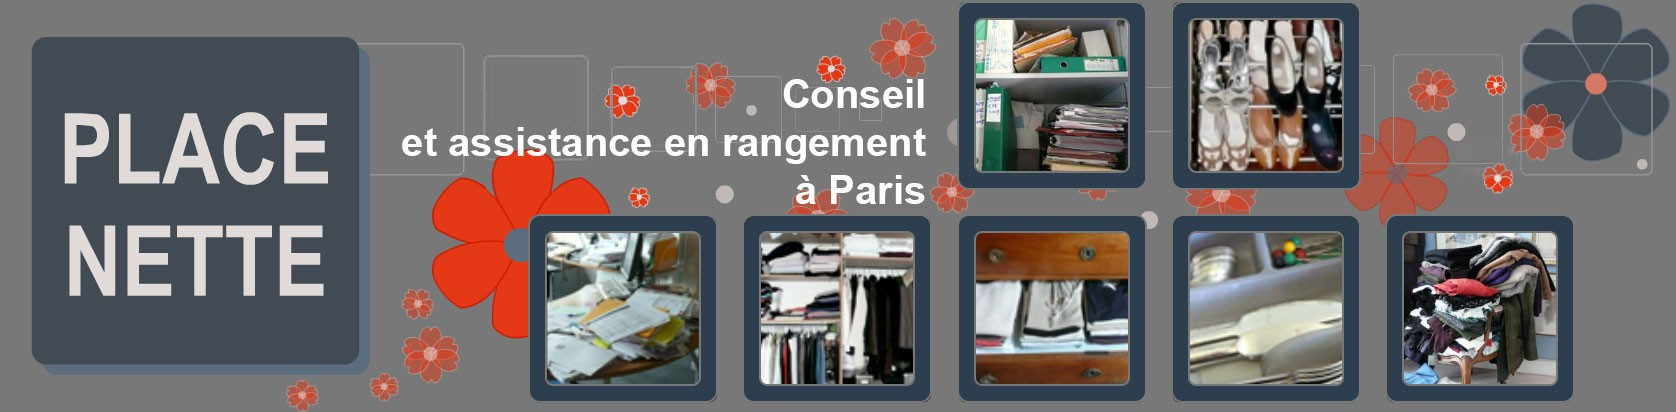 ranger place nette conseil et assistance en rangement paris. Black Bedroom Furniture Sets. Home Design Ideas